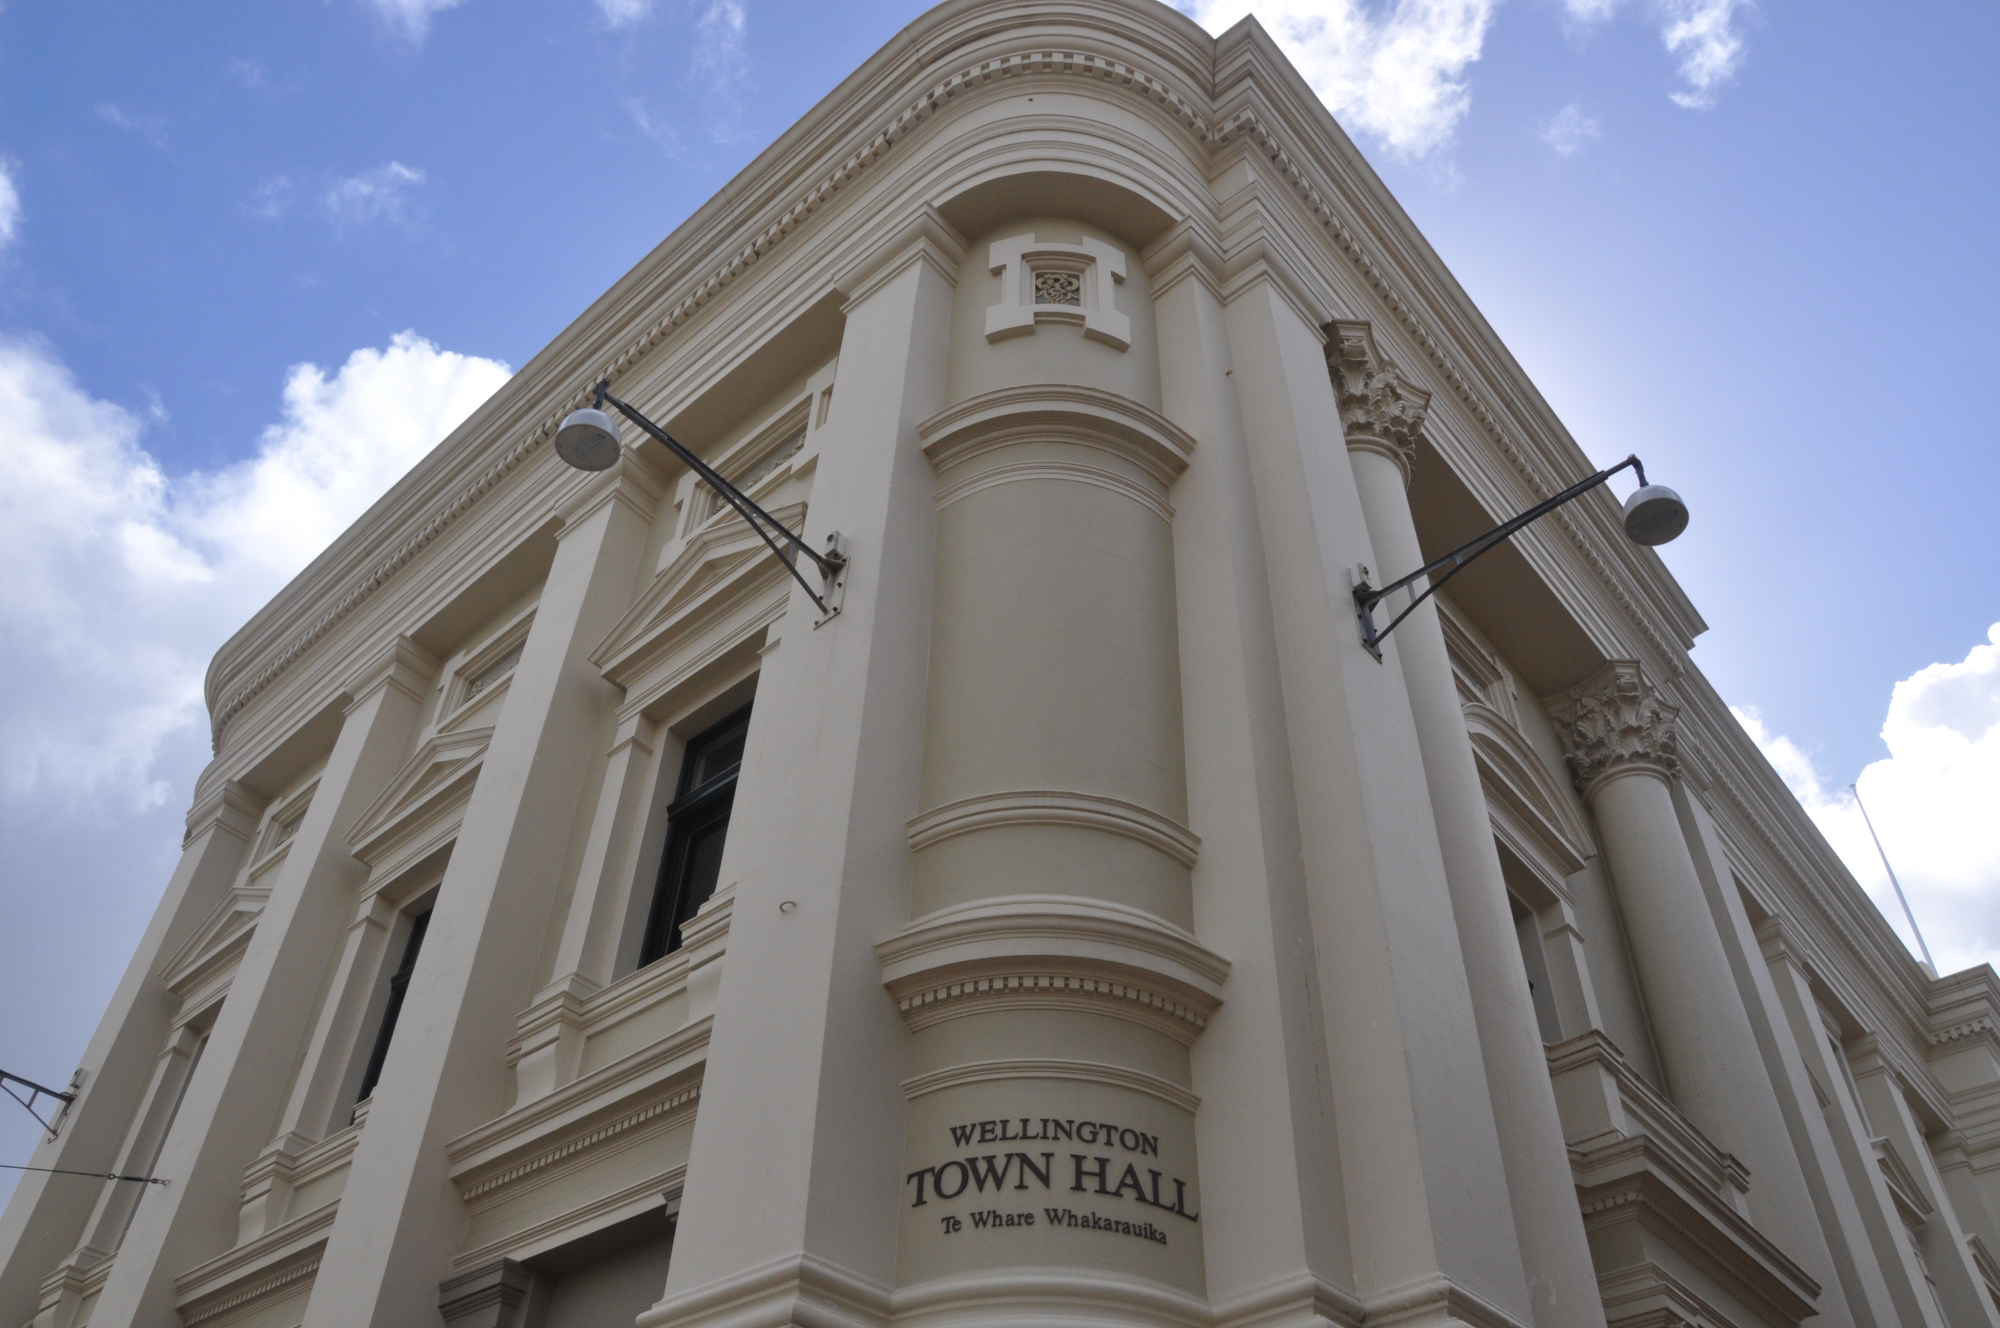 Today the Hall still stands as a beautiful historic building.